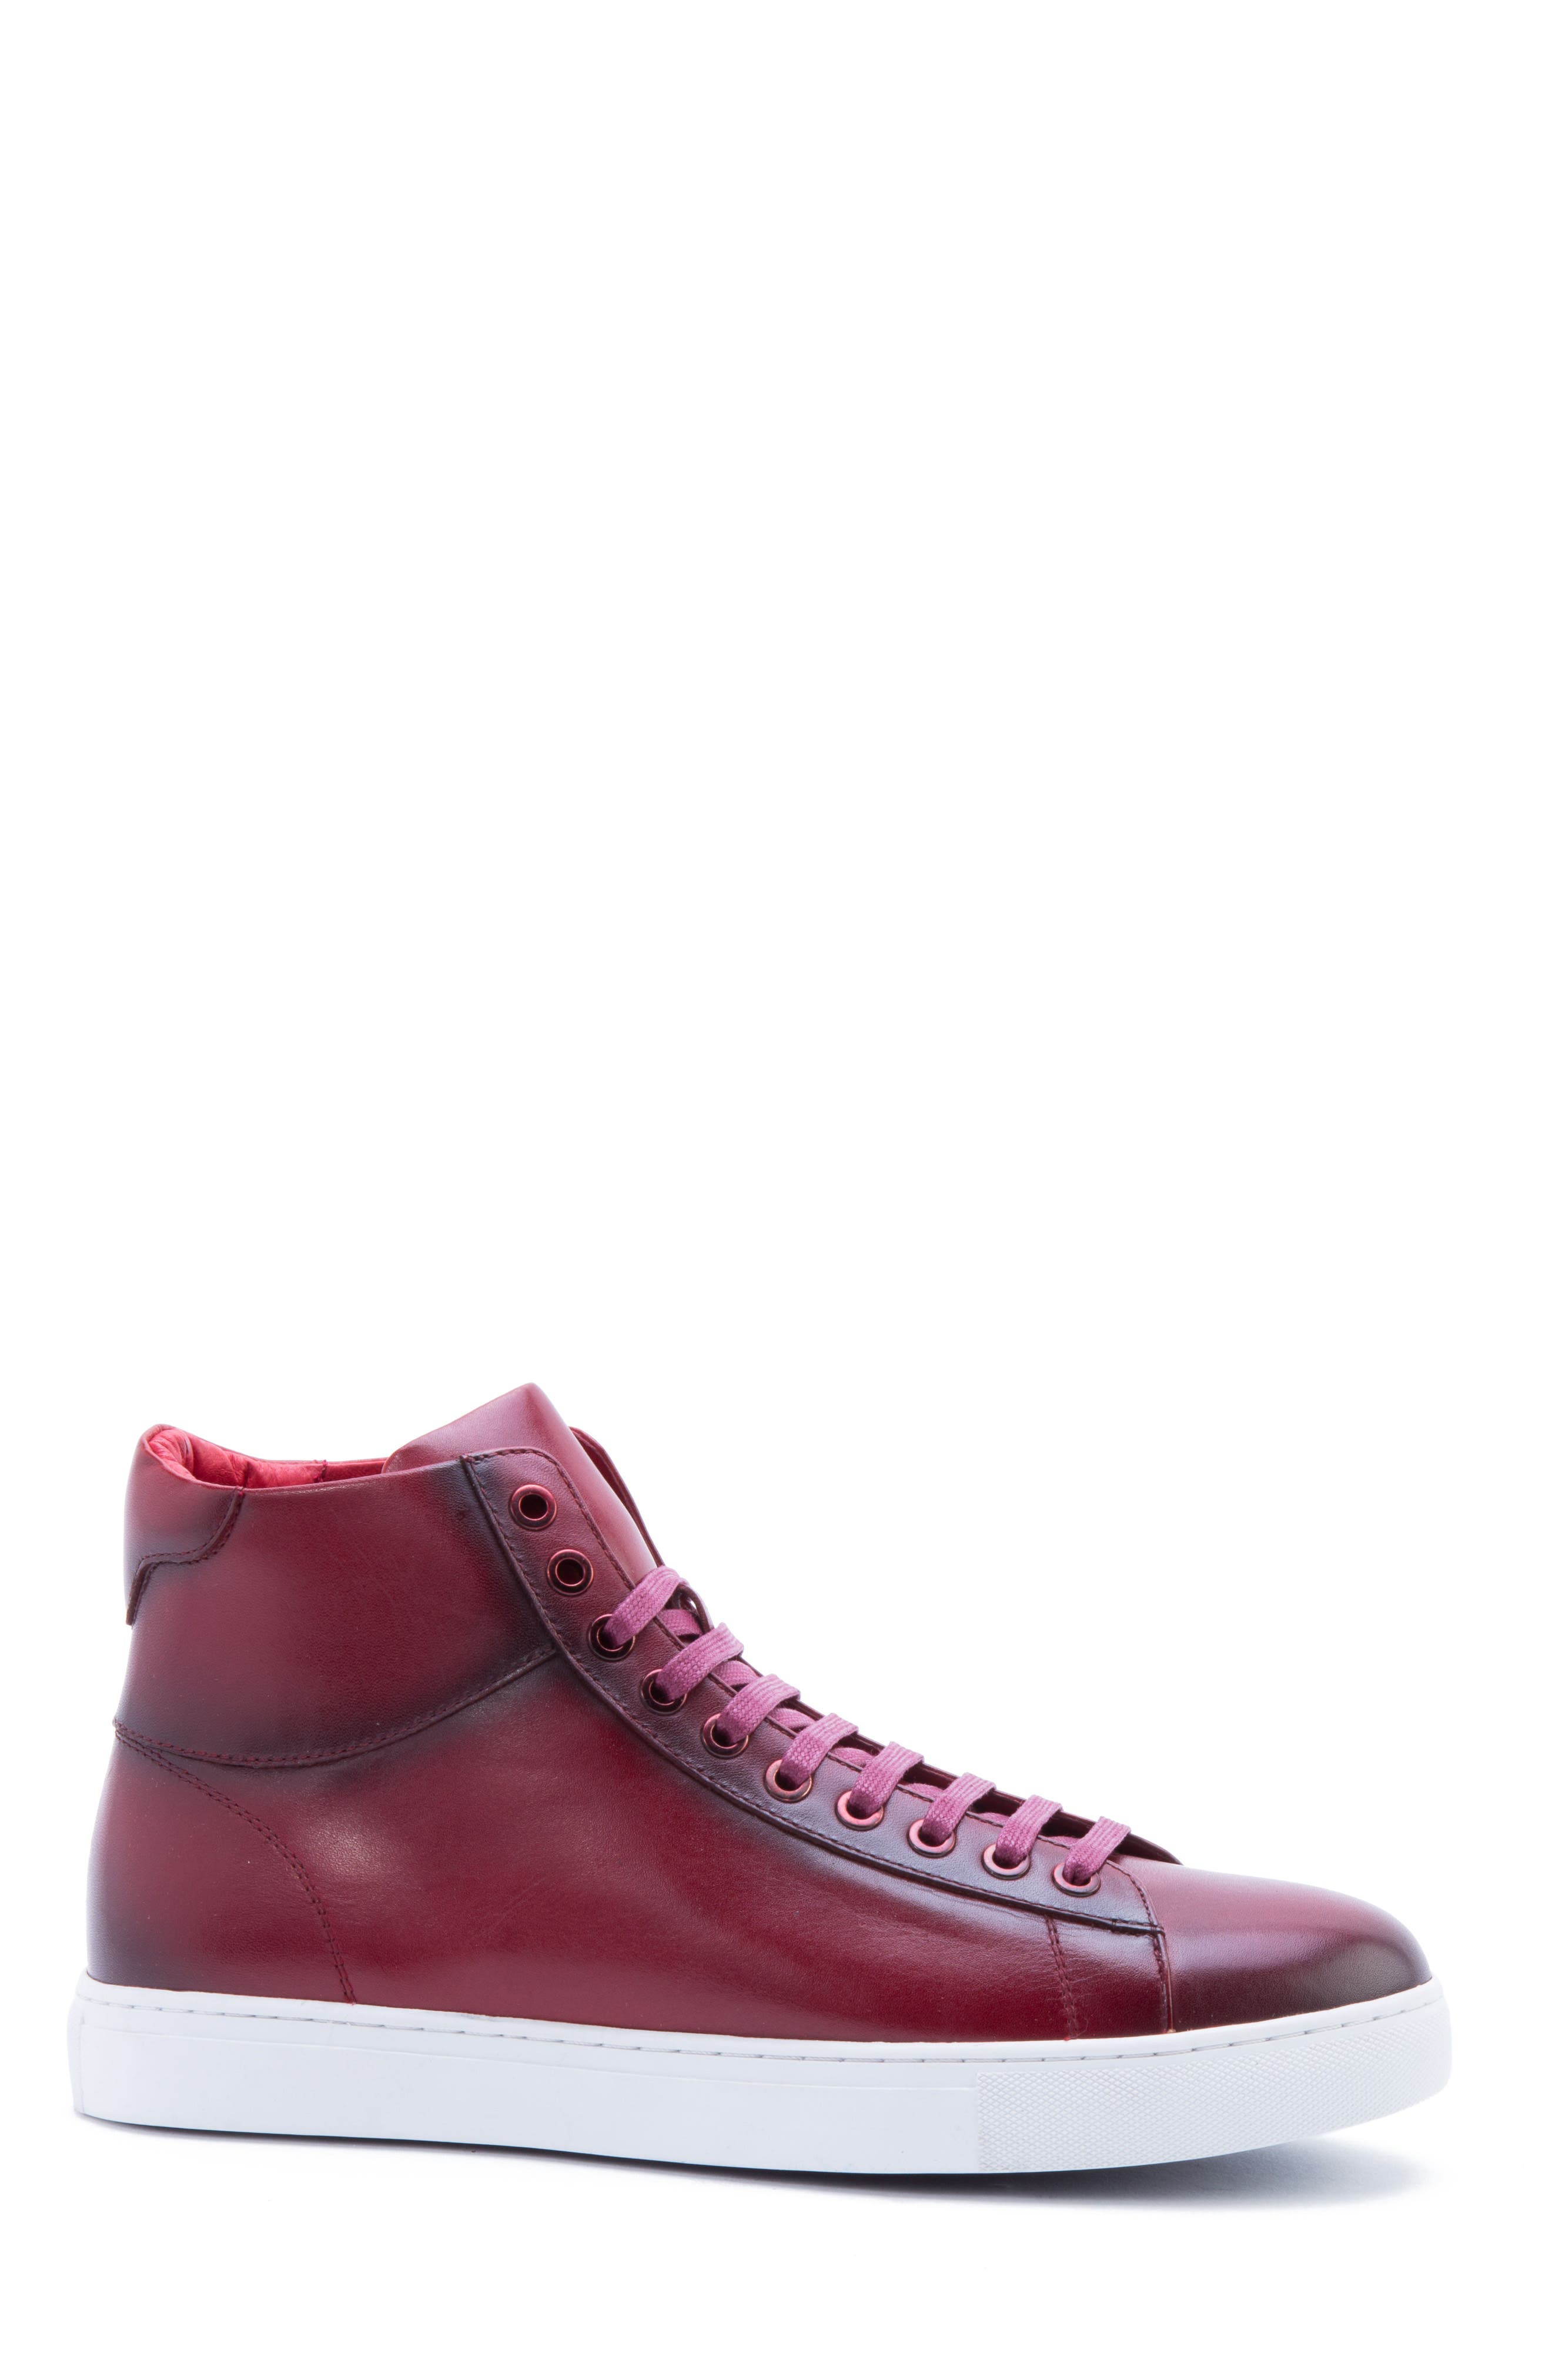 Spinback High Top Sneaker,                             Alternate thumbnail 3, color,                             RED LEATHER